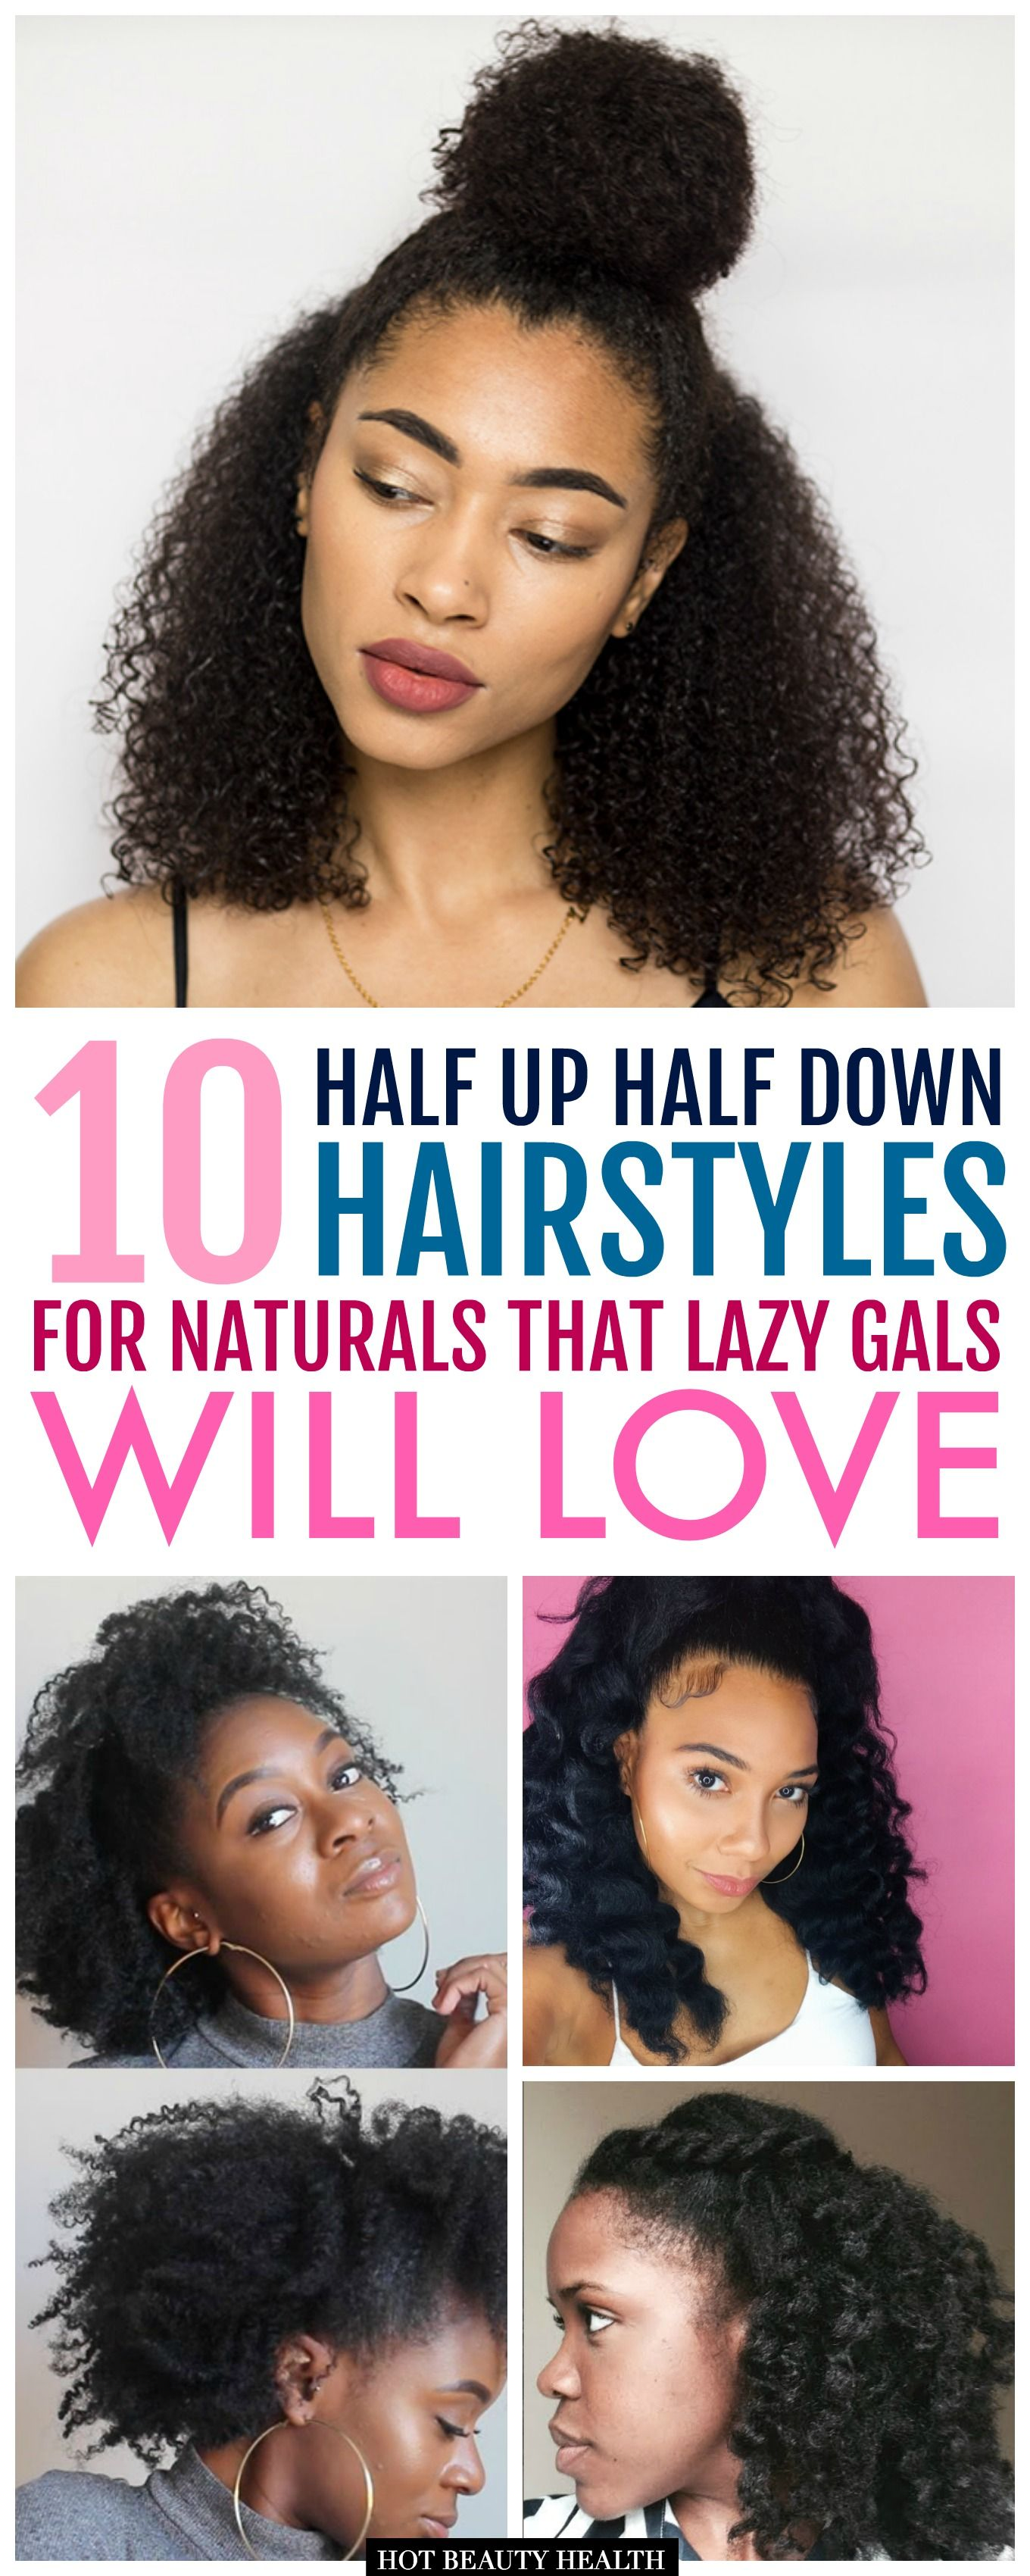 10 Easy Half Up Half Down Hairstyles For Natural Hair Gals Half